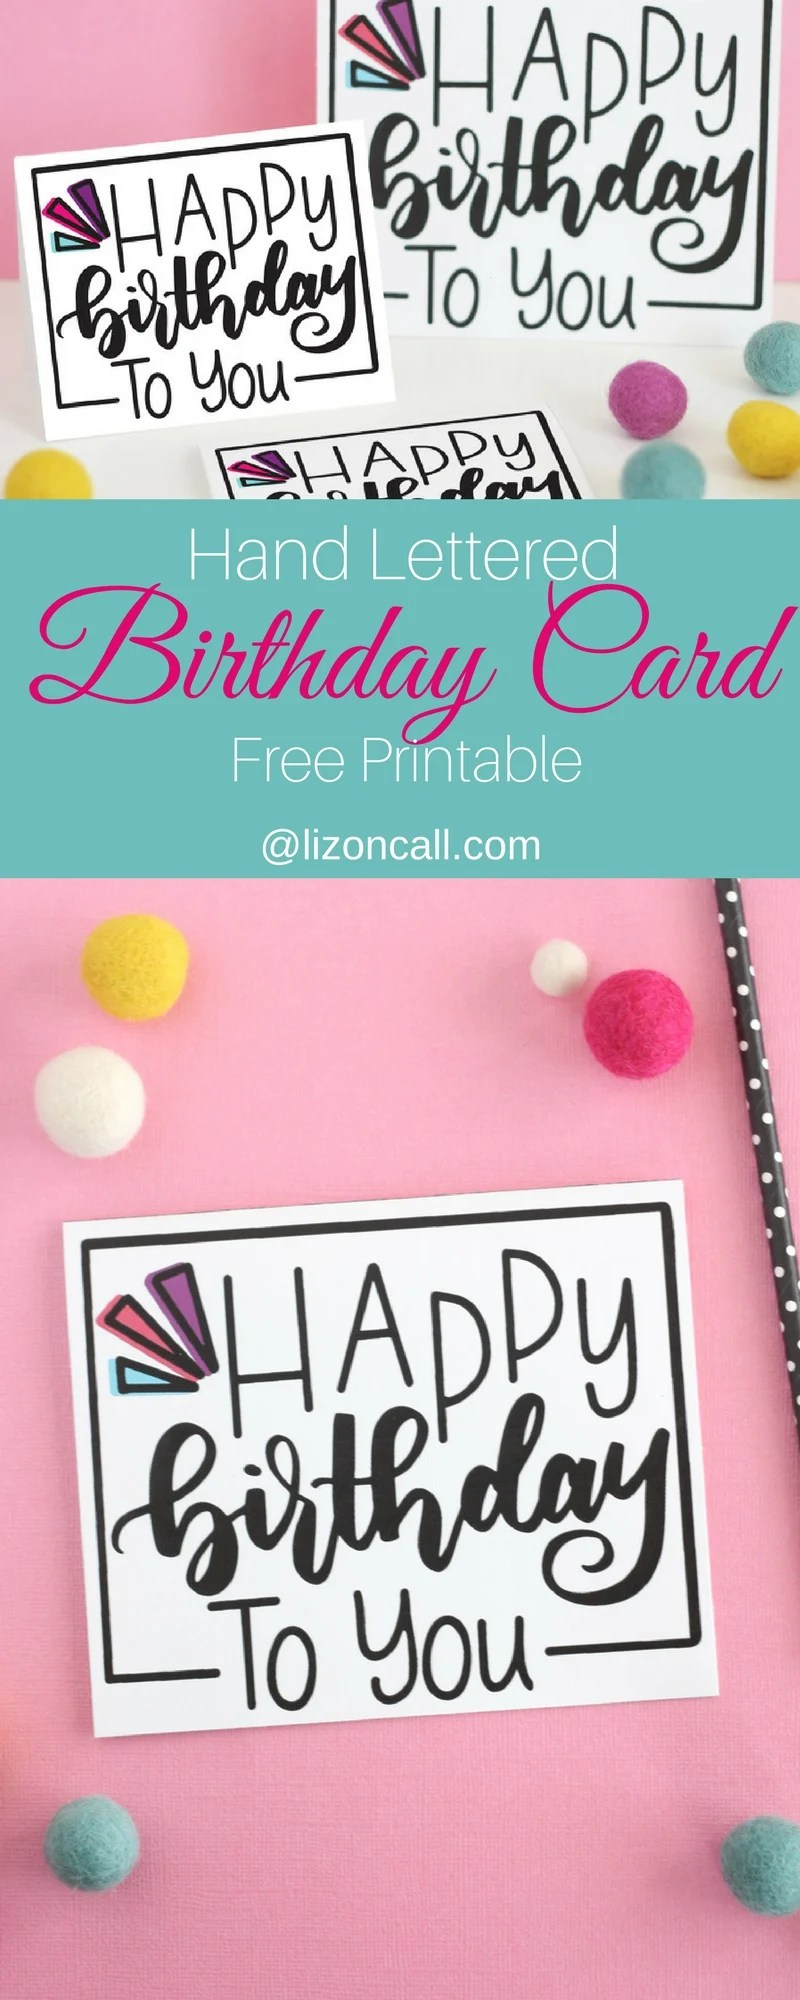 hand lettered free printable birthday card liz on call. Black Bedroom Furniture Sets. Home Design Ideas